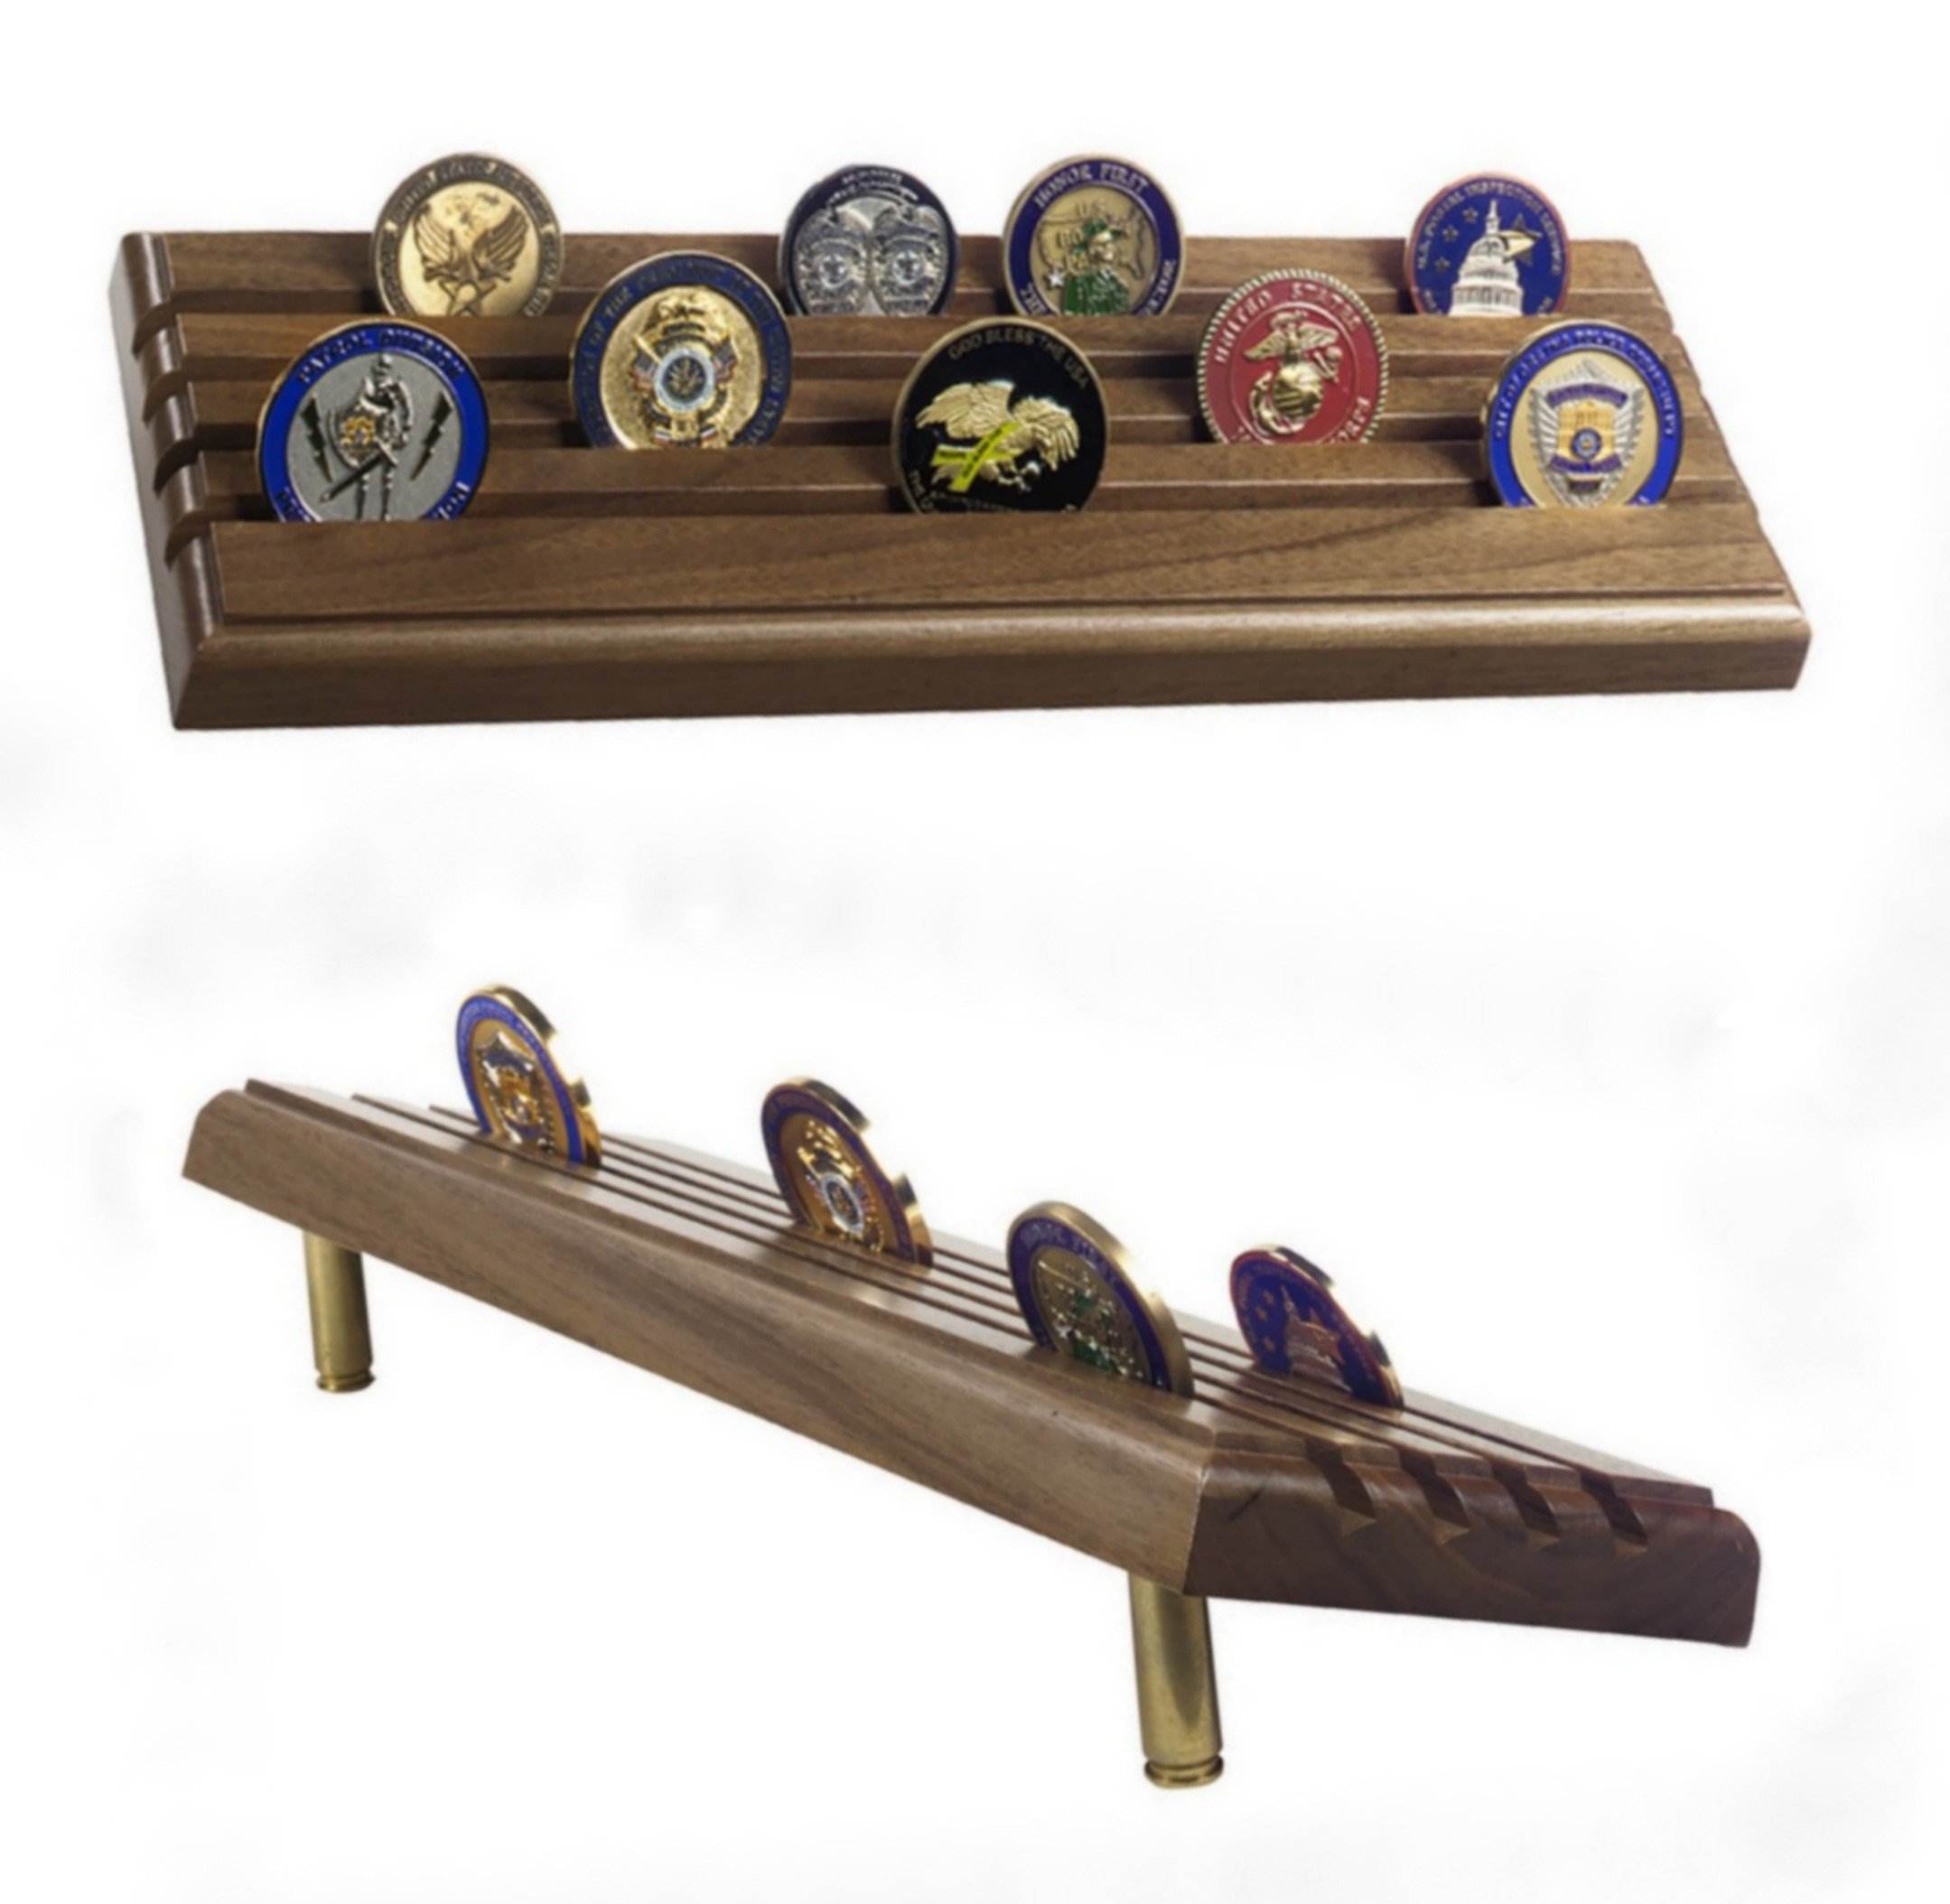 Made in USA Military 4-Row Tiered Coin Display Rack with Gun Shells - Natural Walnut